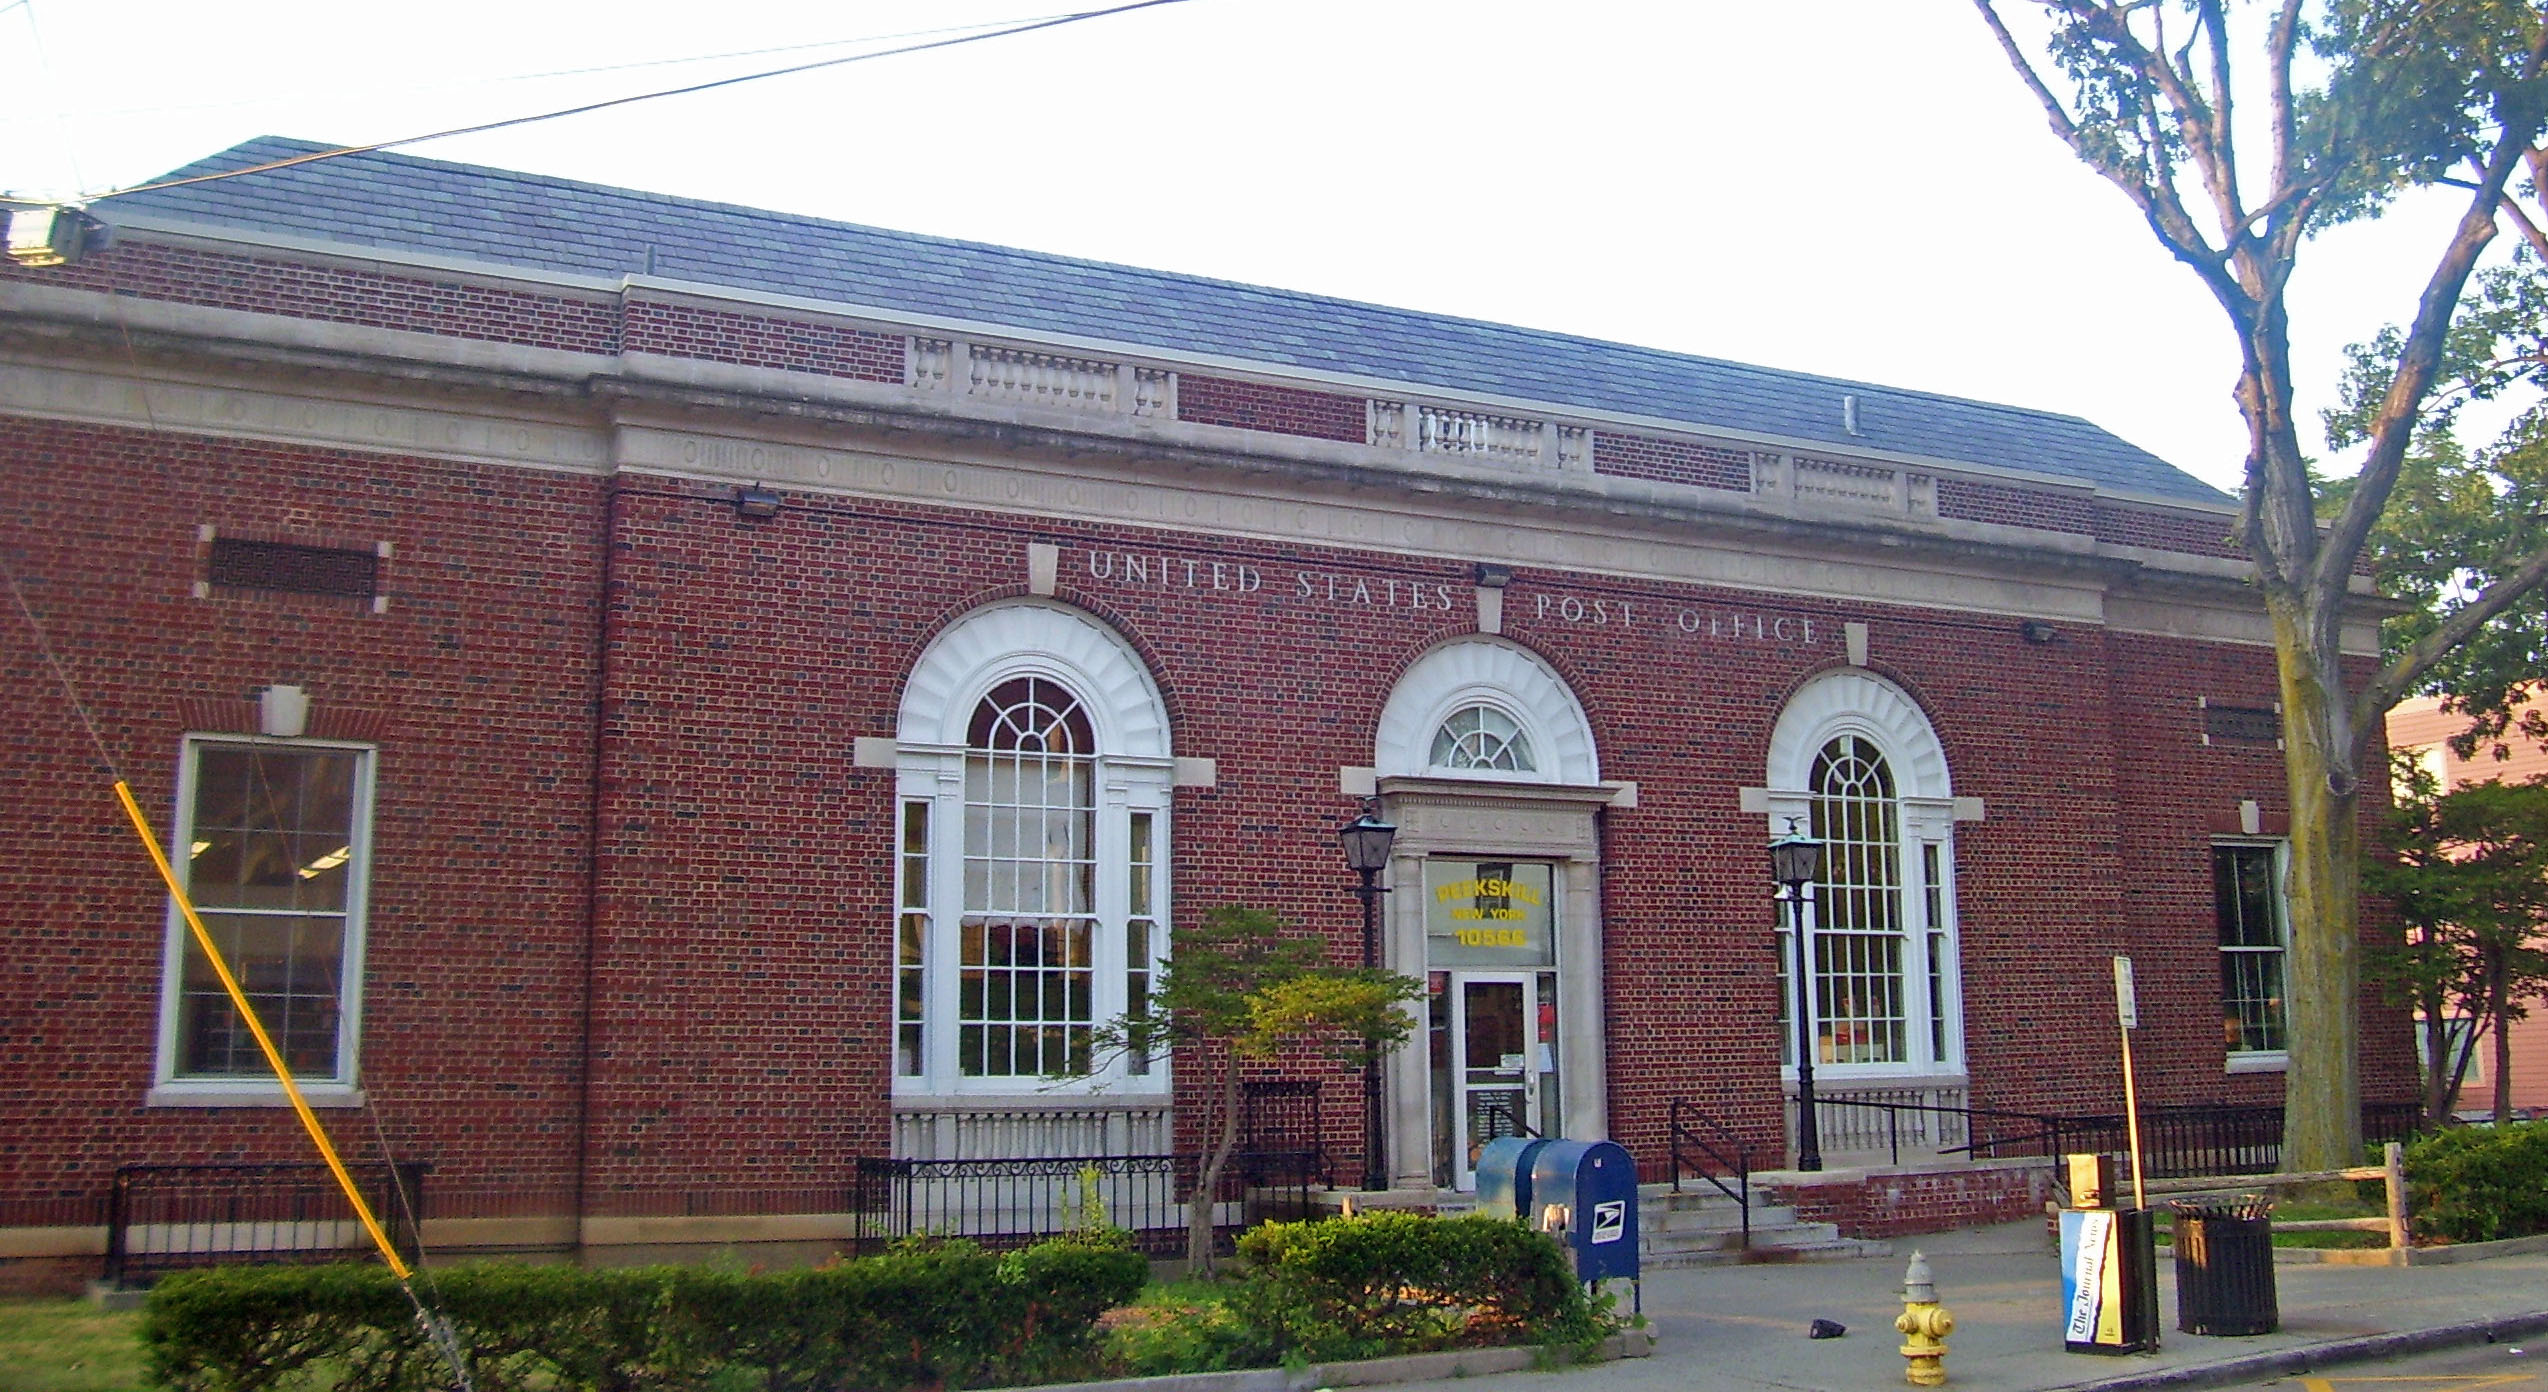 File:Peekskill, NY, post